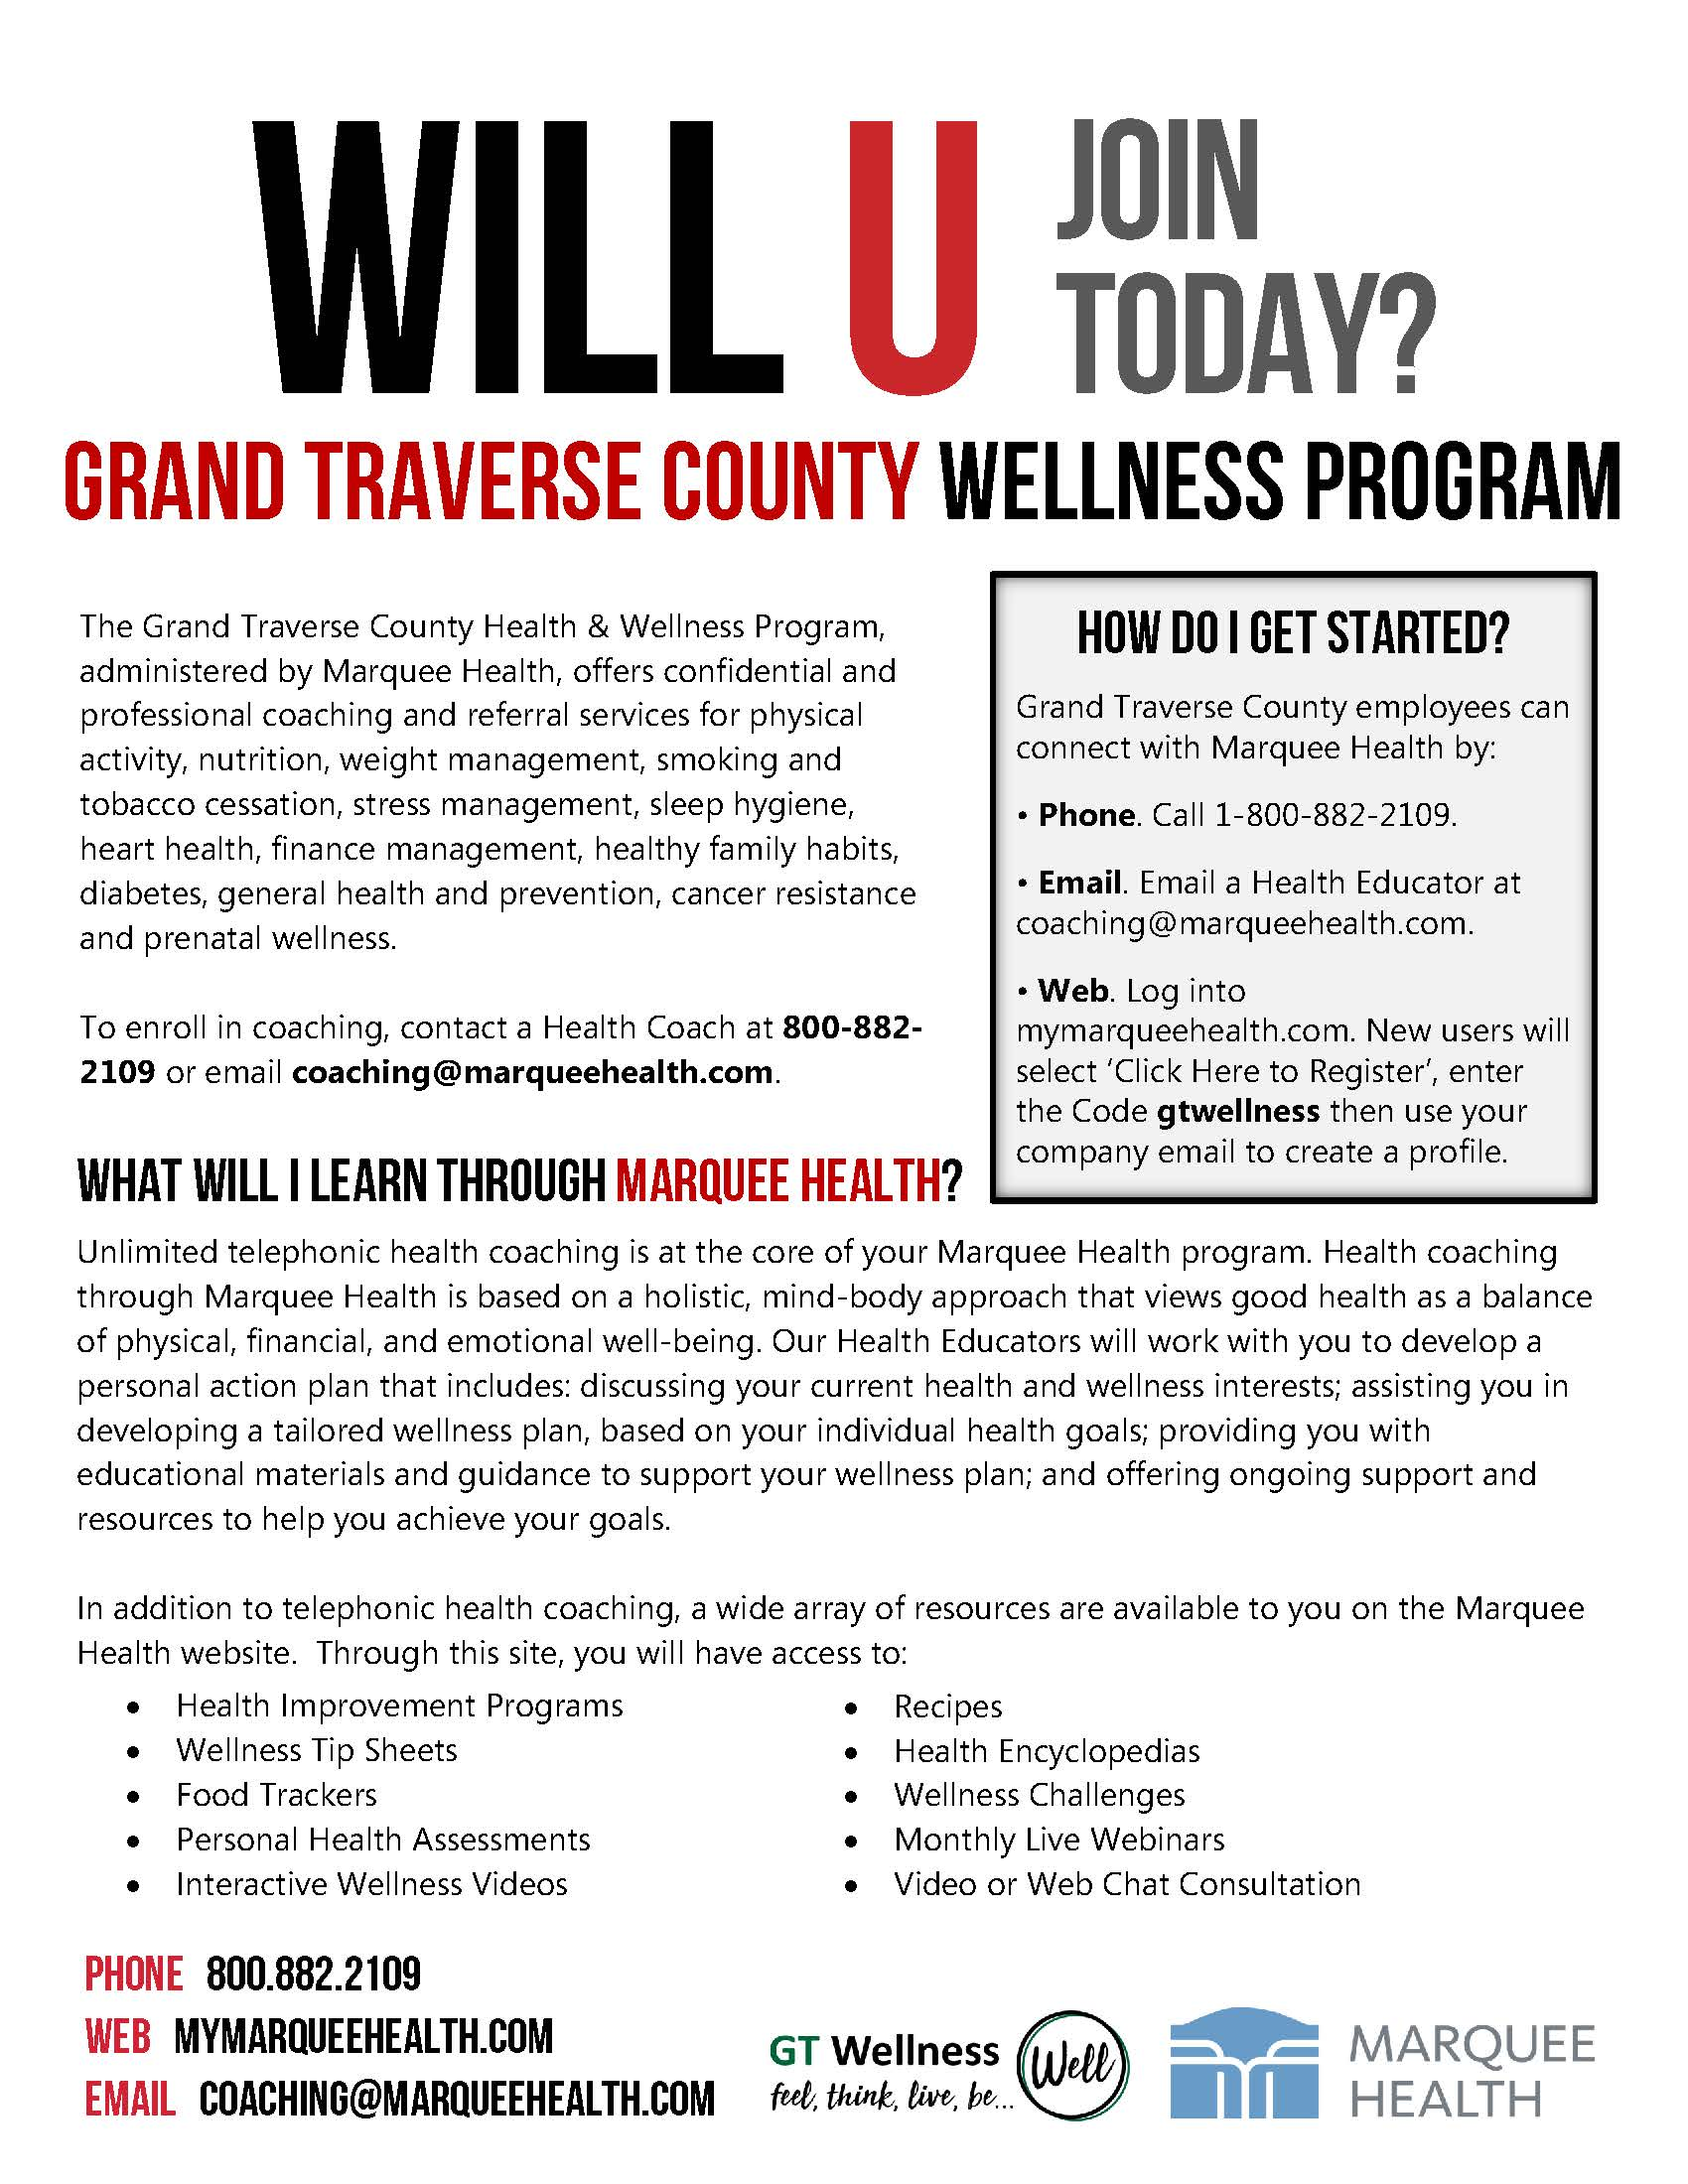 Marquee Health - Intro Flyer - Grand Traverse County